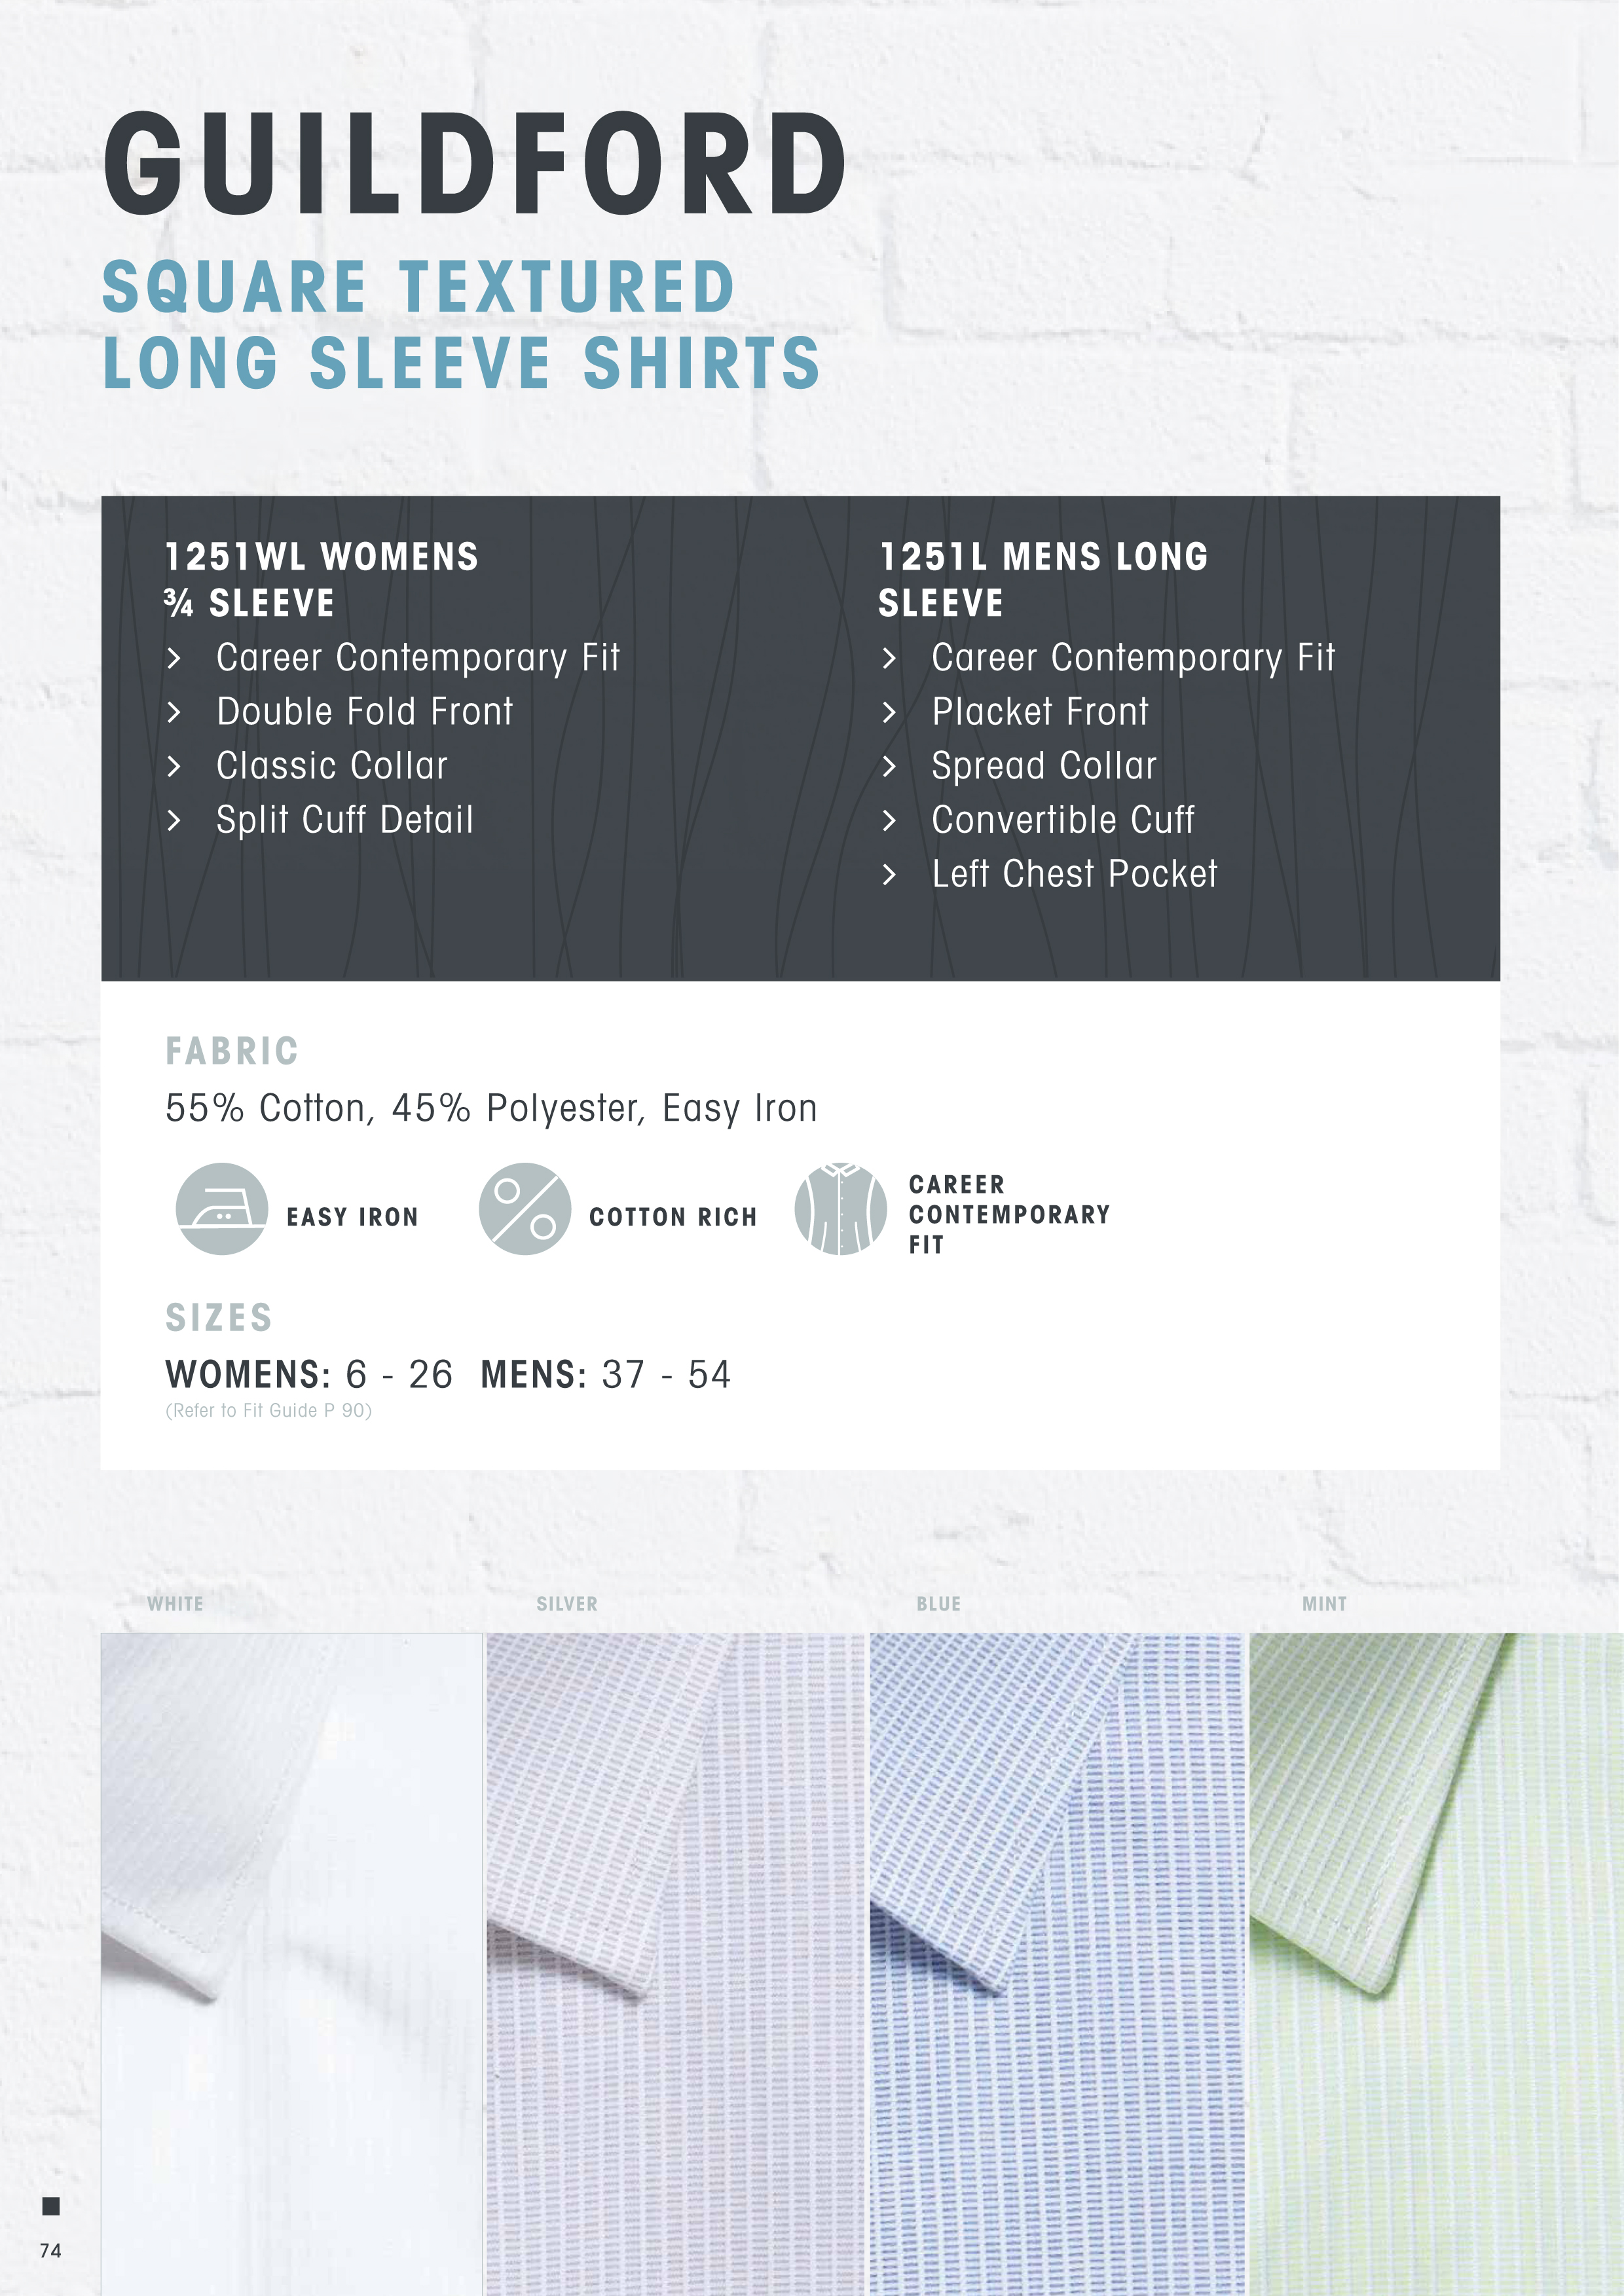 Guildford Corporate Shirt #1251L by Gloweave With Logo Service Colour Card. Available White, Blue, Silver and Mint. Mens has a Chest Pocket. Mens can be worn with a Tie or Open Neck. Cotton Rich 55% with Easy Iron Treatment. Mens Sizes up to Size 54. Corporate Sales Call Free 1800 654 990